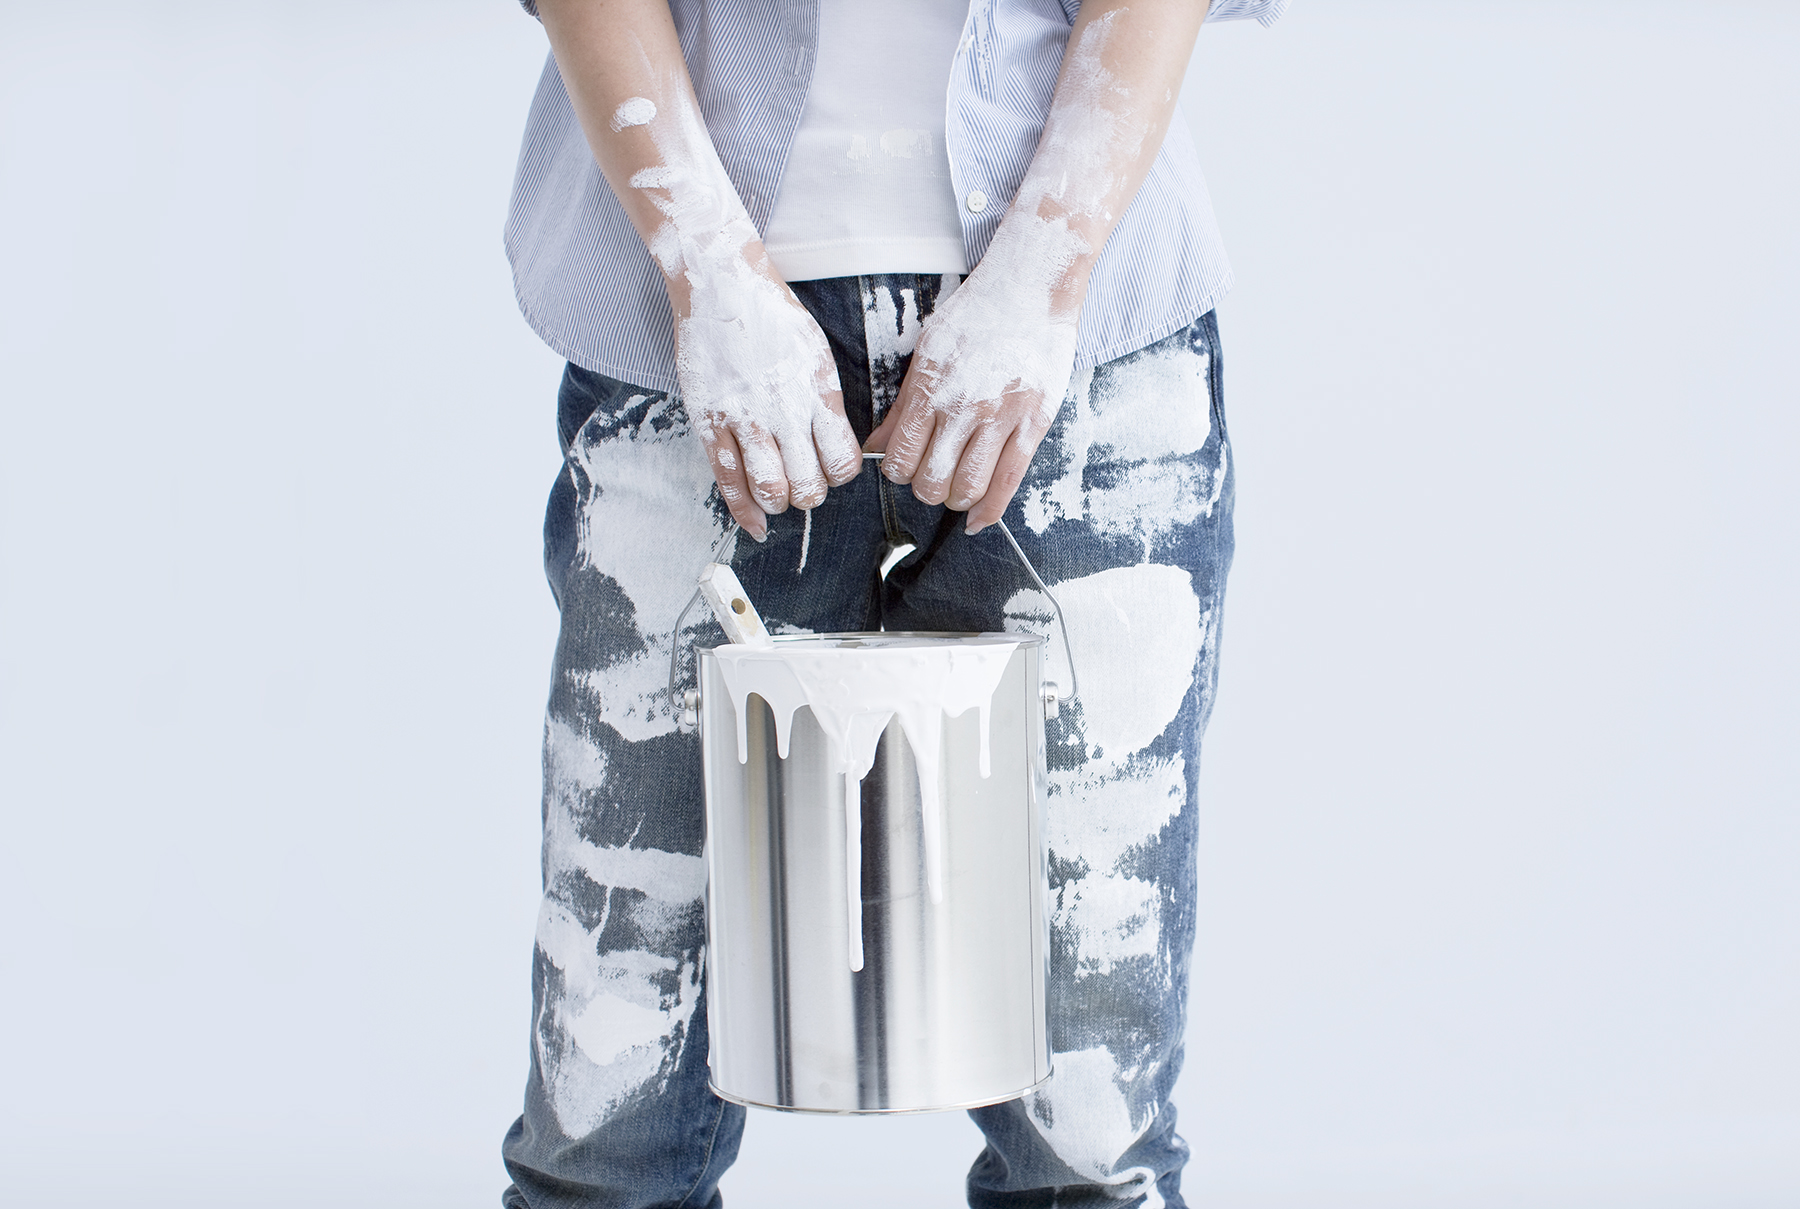 How to Get Paint Out of Clothes | Real Simple